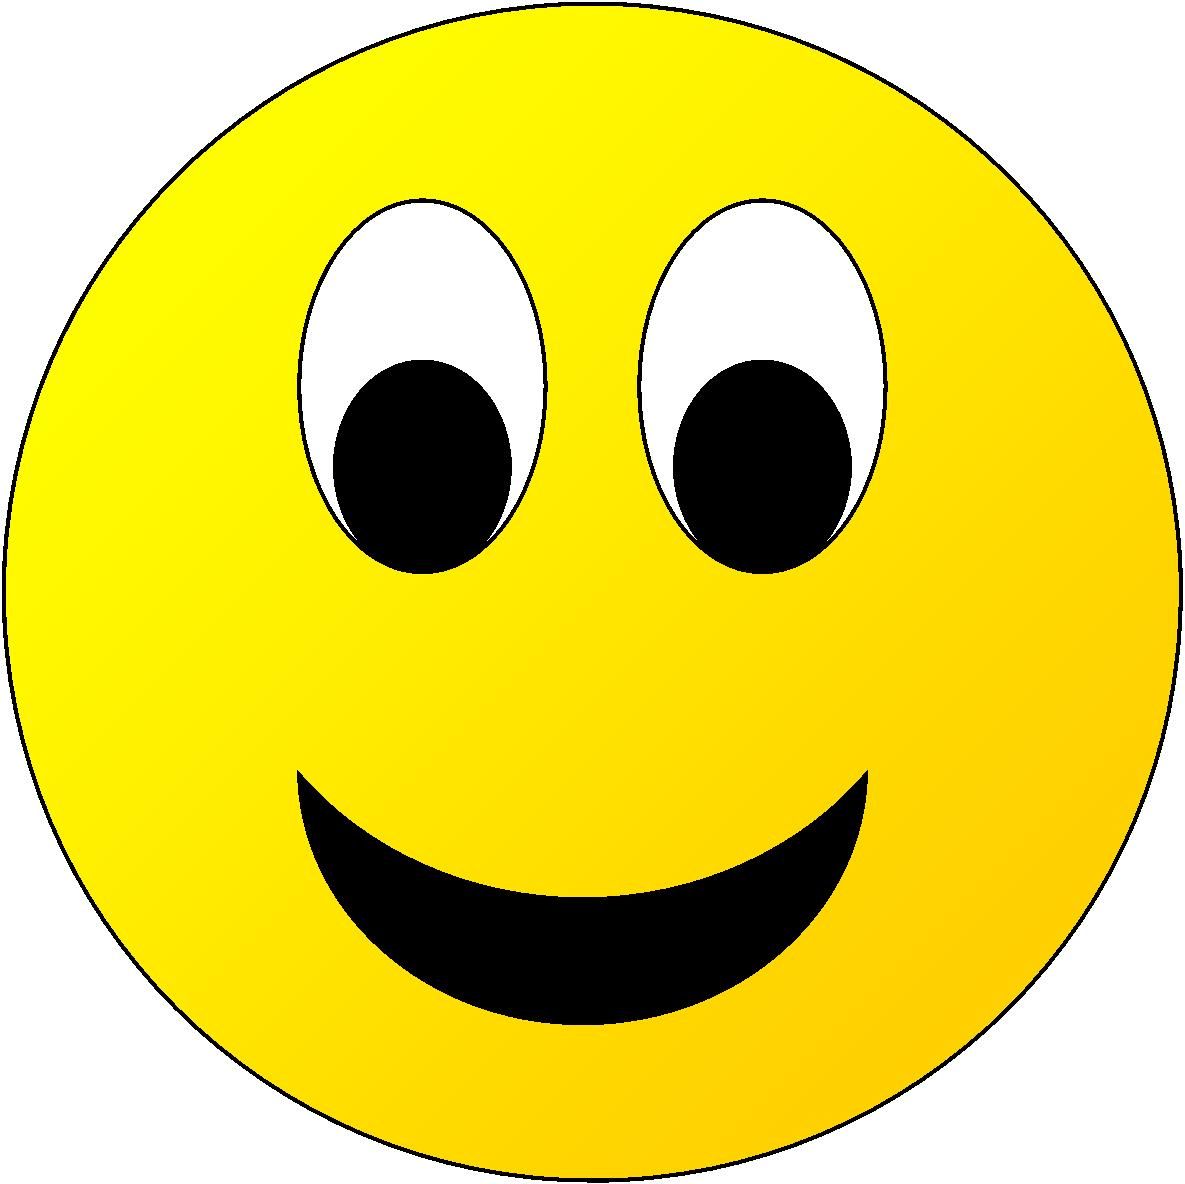 This image shows the yellow face of smiley – Choice C